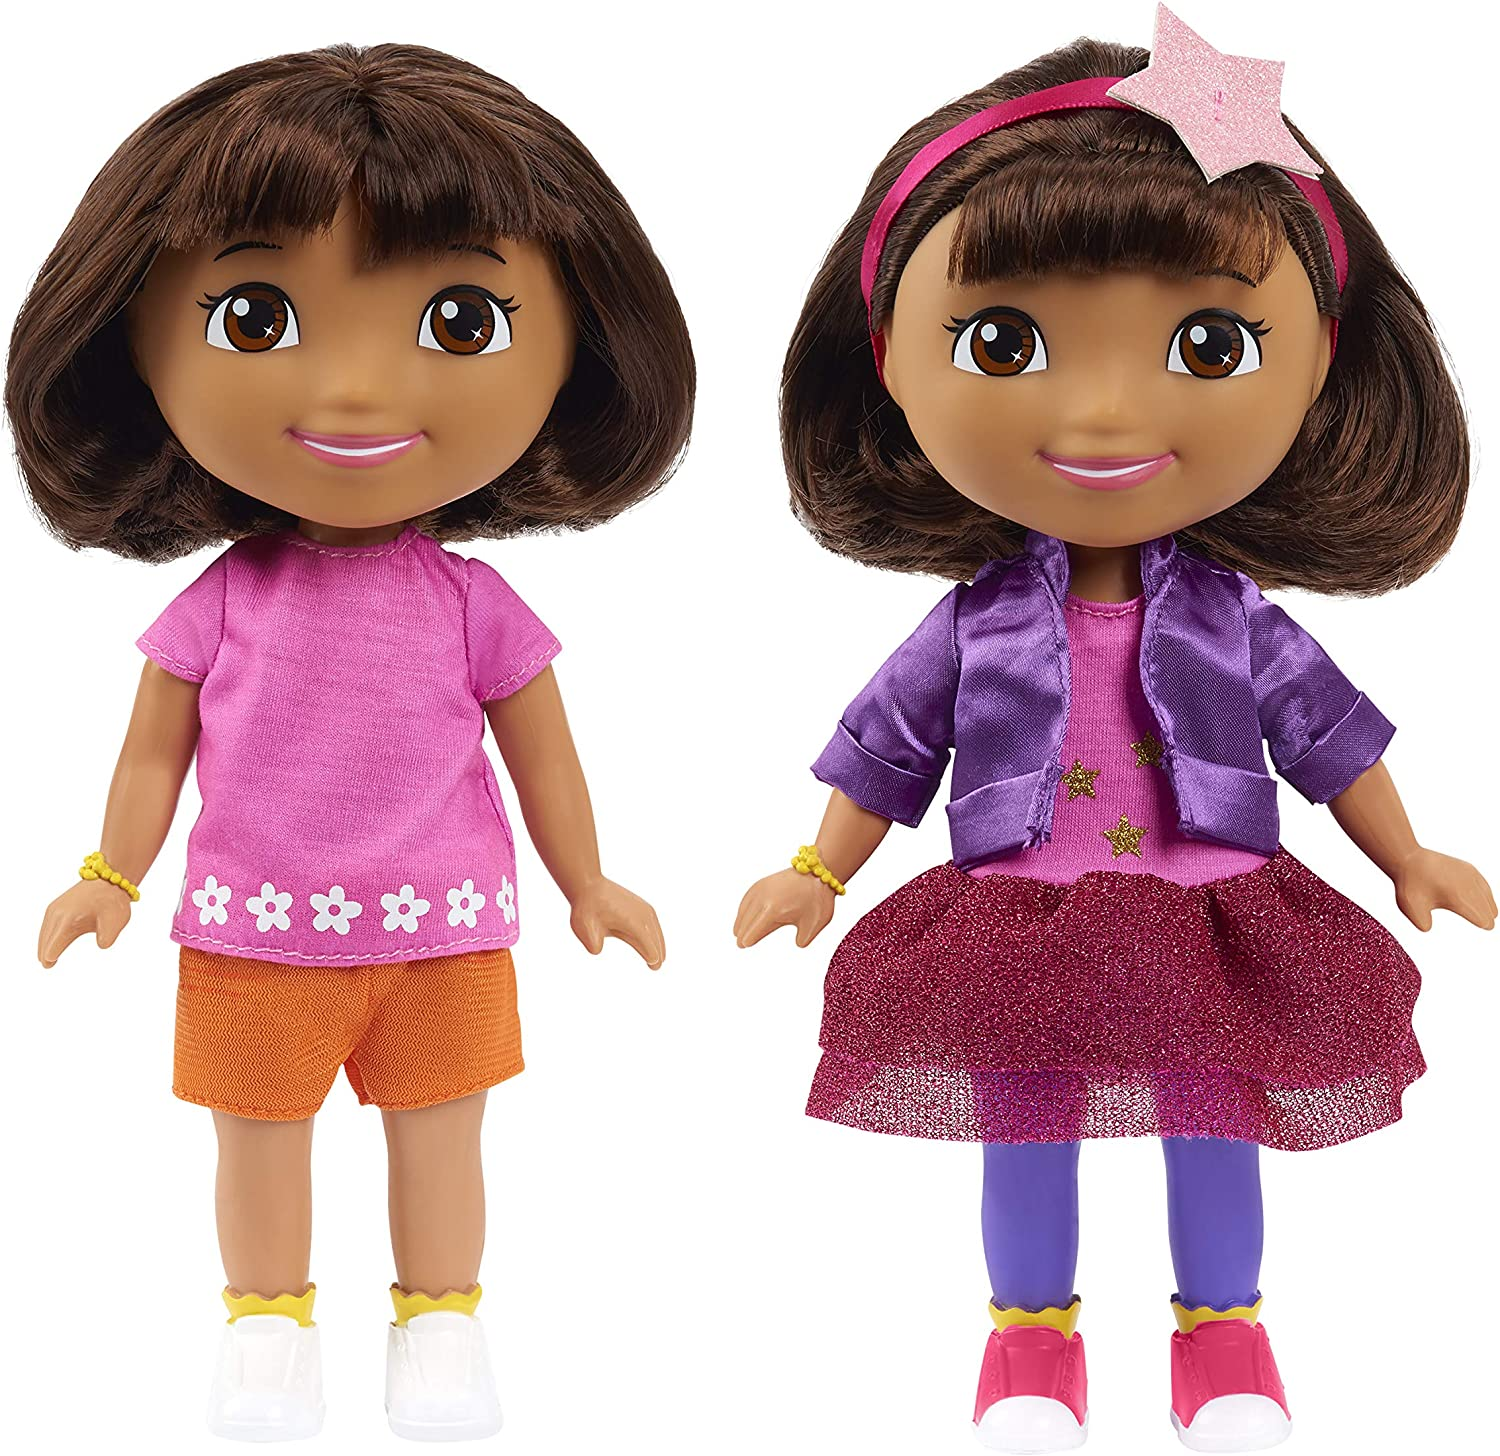 """Toy Gift NEW 2020 Dora the Explorer Adventure Doll Classic 8/"""" Inches Tall"""